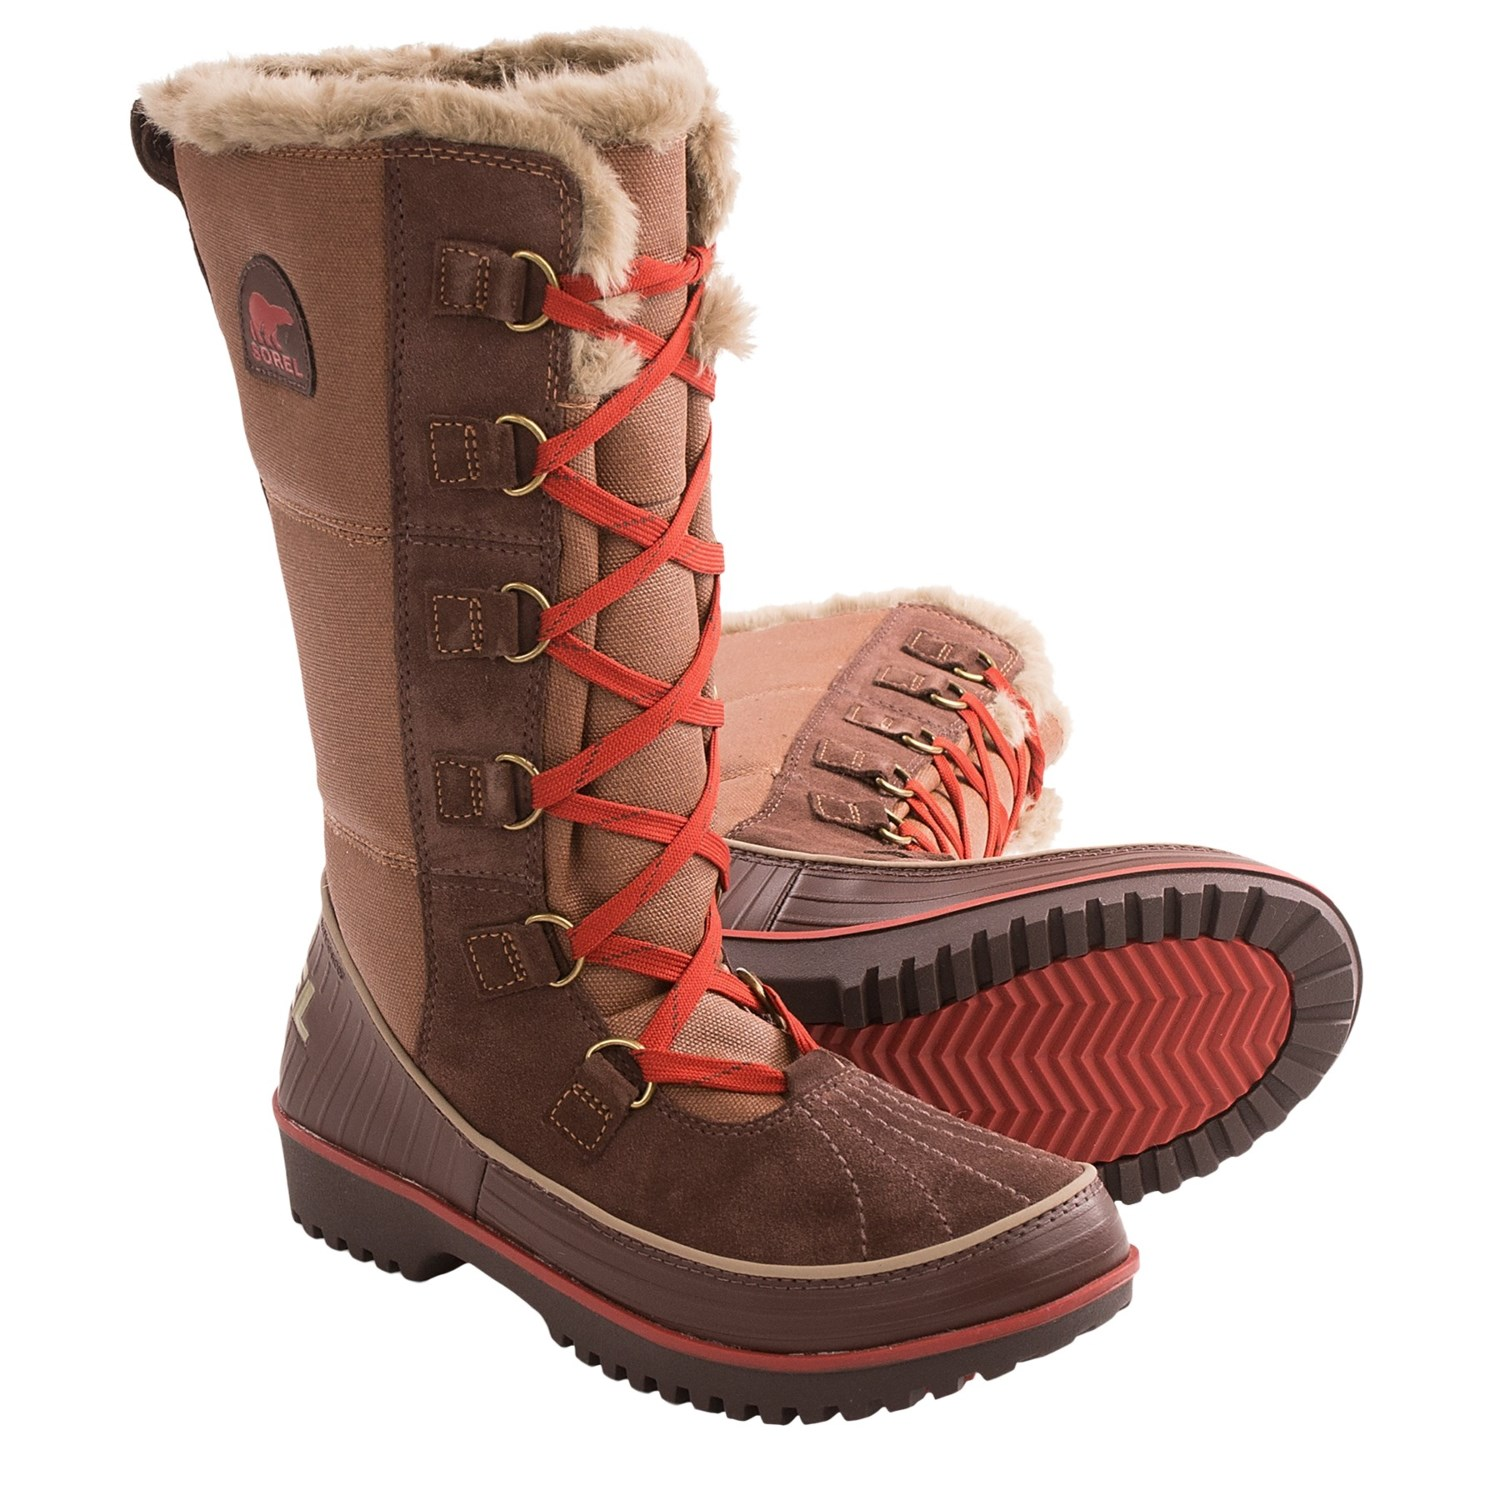 sorel s tivoli high ii winter boots mount mercy